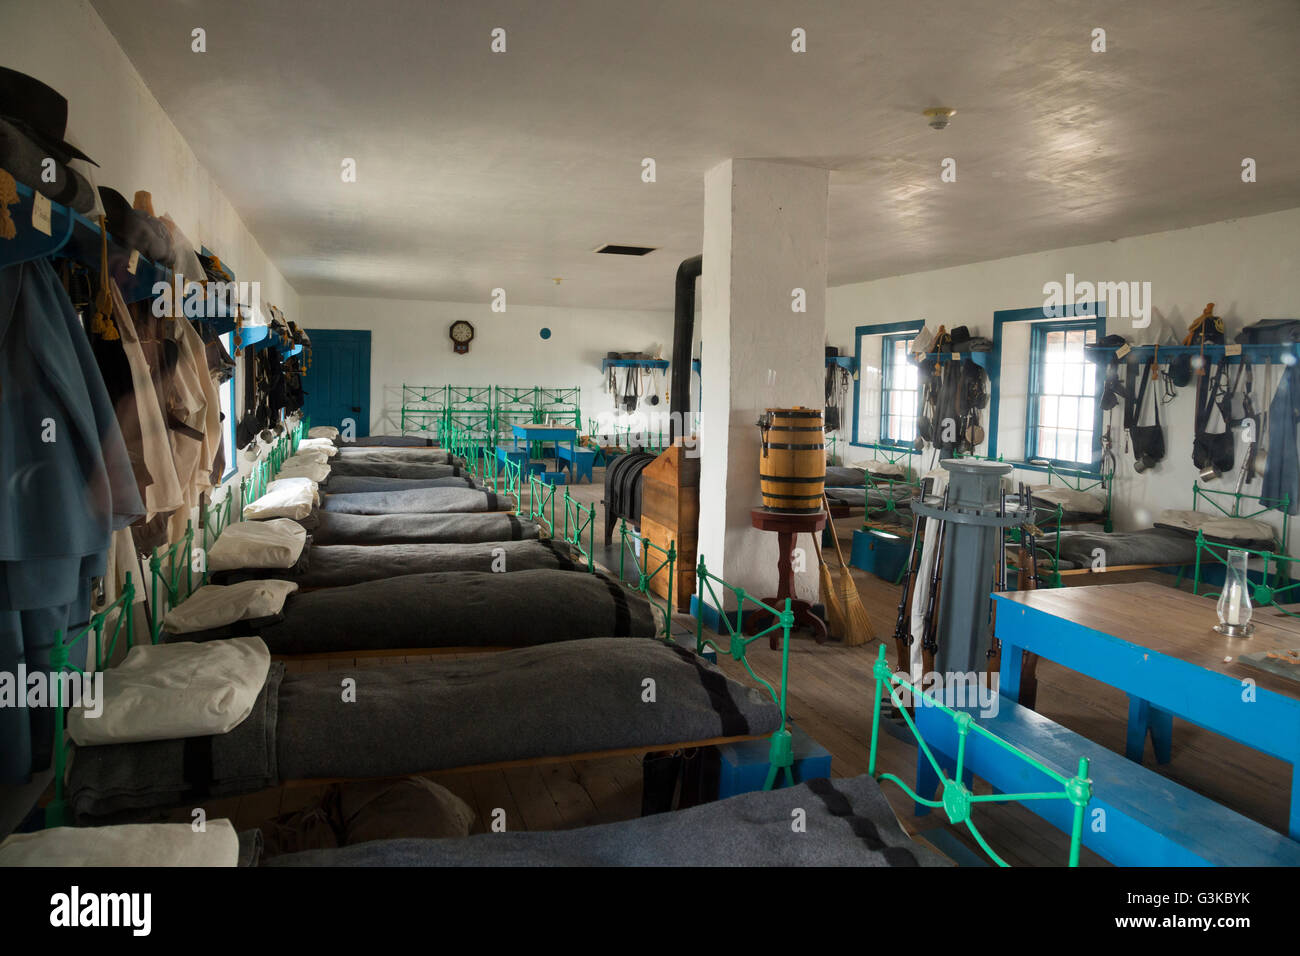 Fort Laramie Wyoming Army post interior of barrack room - Stock Image